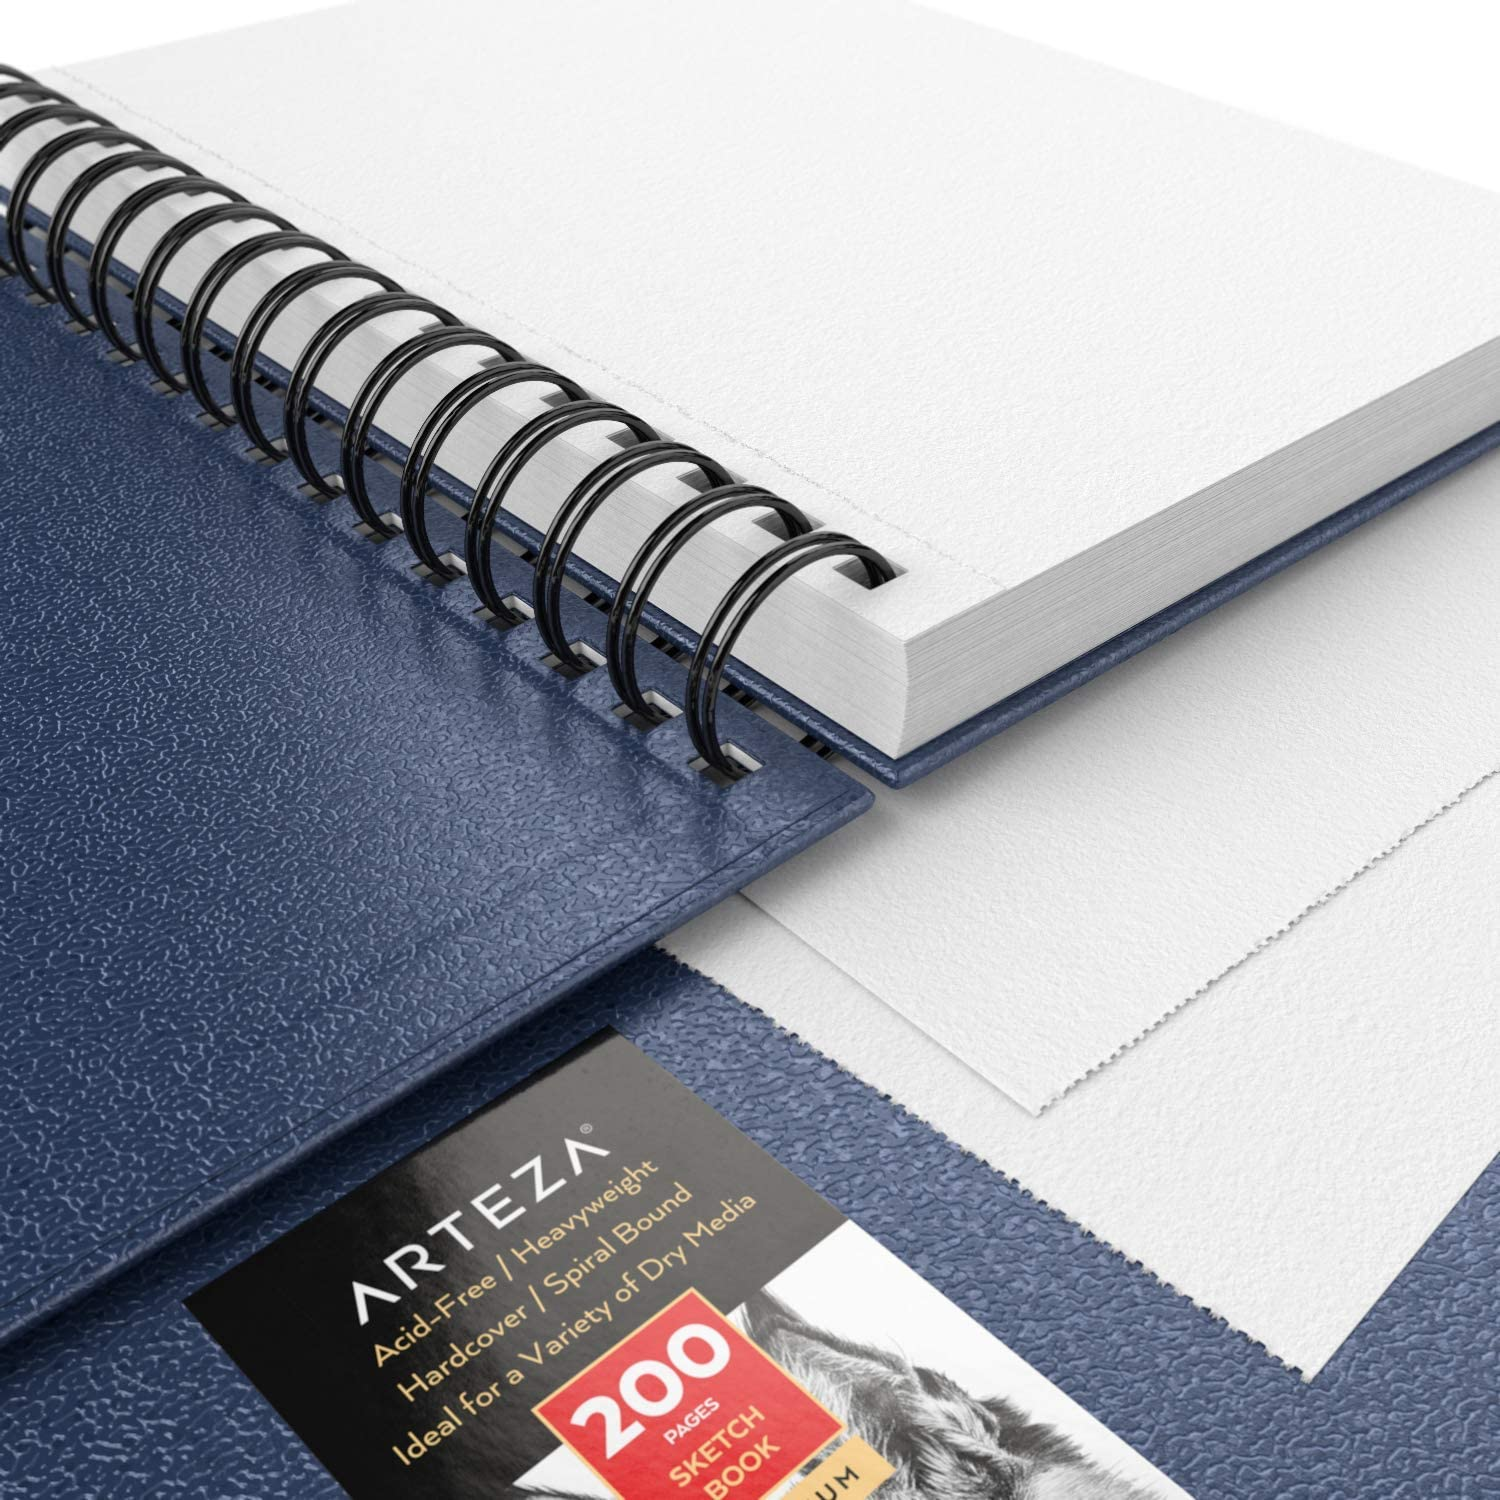 Use with Pencils Crayons /& Other Dry Media Spiral-Bound 5.5x8.5-inch 3-Pack Arteza Sketch Book 68 lb 100 GSM Pens Hardcover Sketchbook 300 Sheets Total Charcoal Blue Drawing Pads